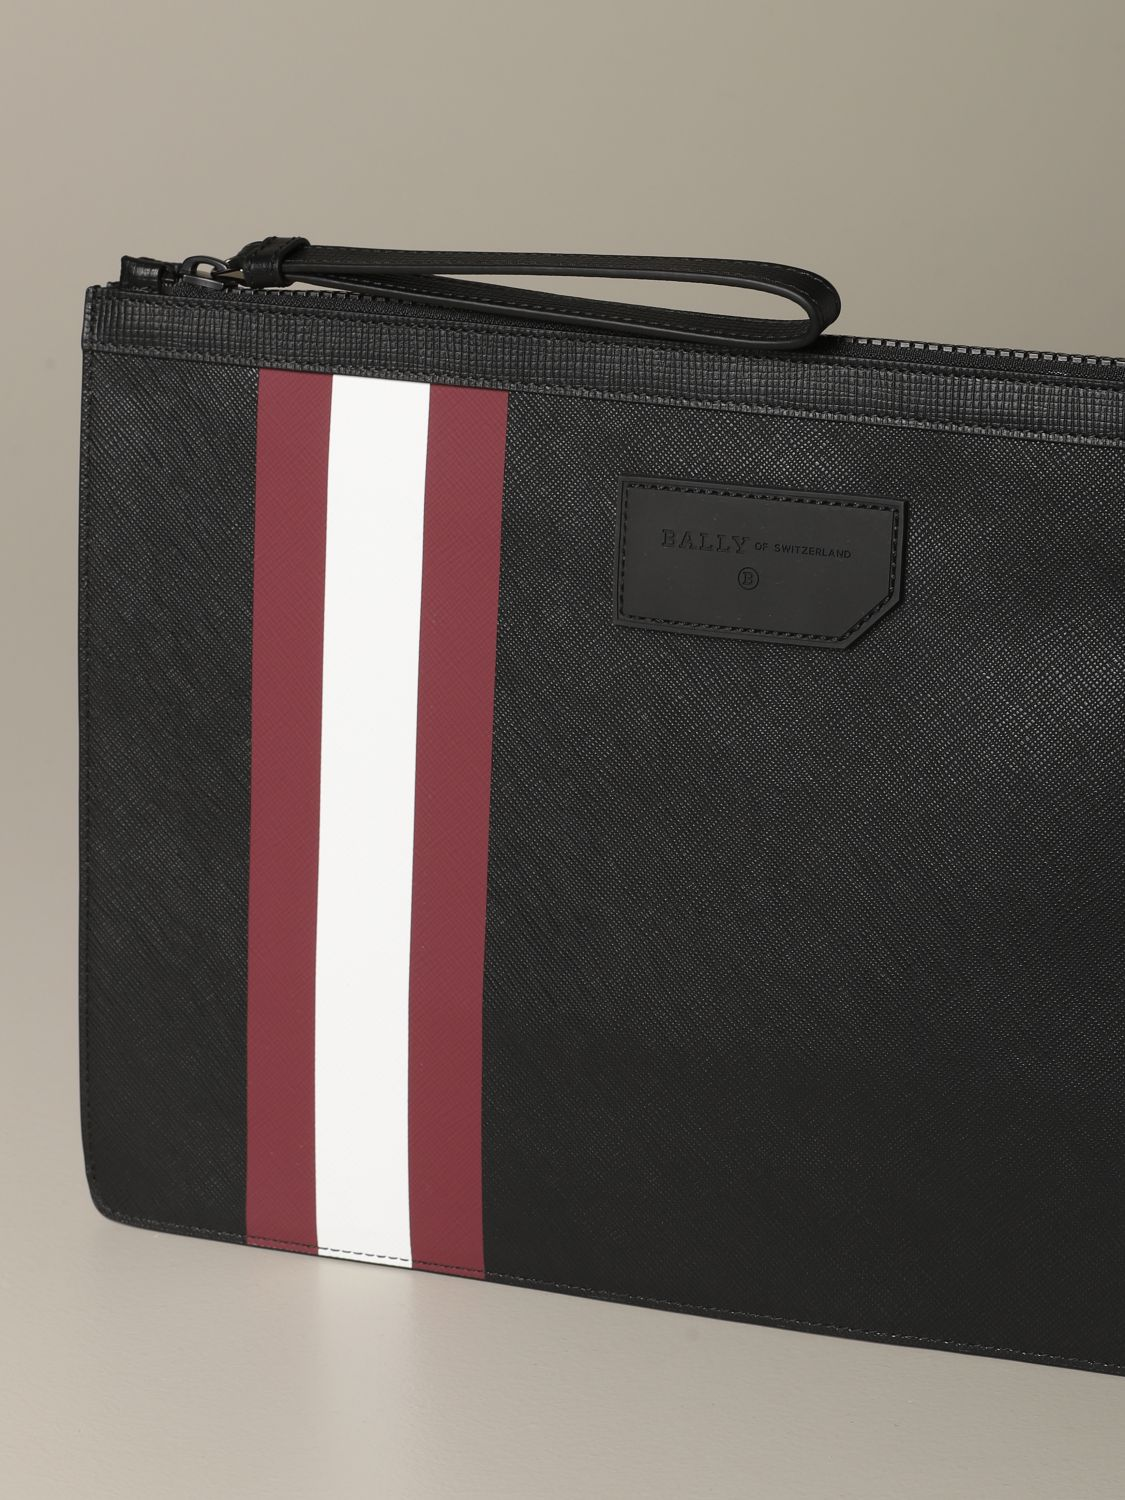 Briefcase Bally: Bollis Bally pouch in coated canvas with trainspotting red 3